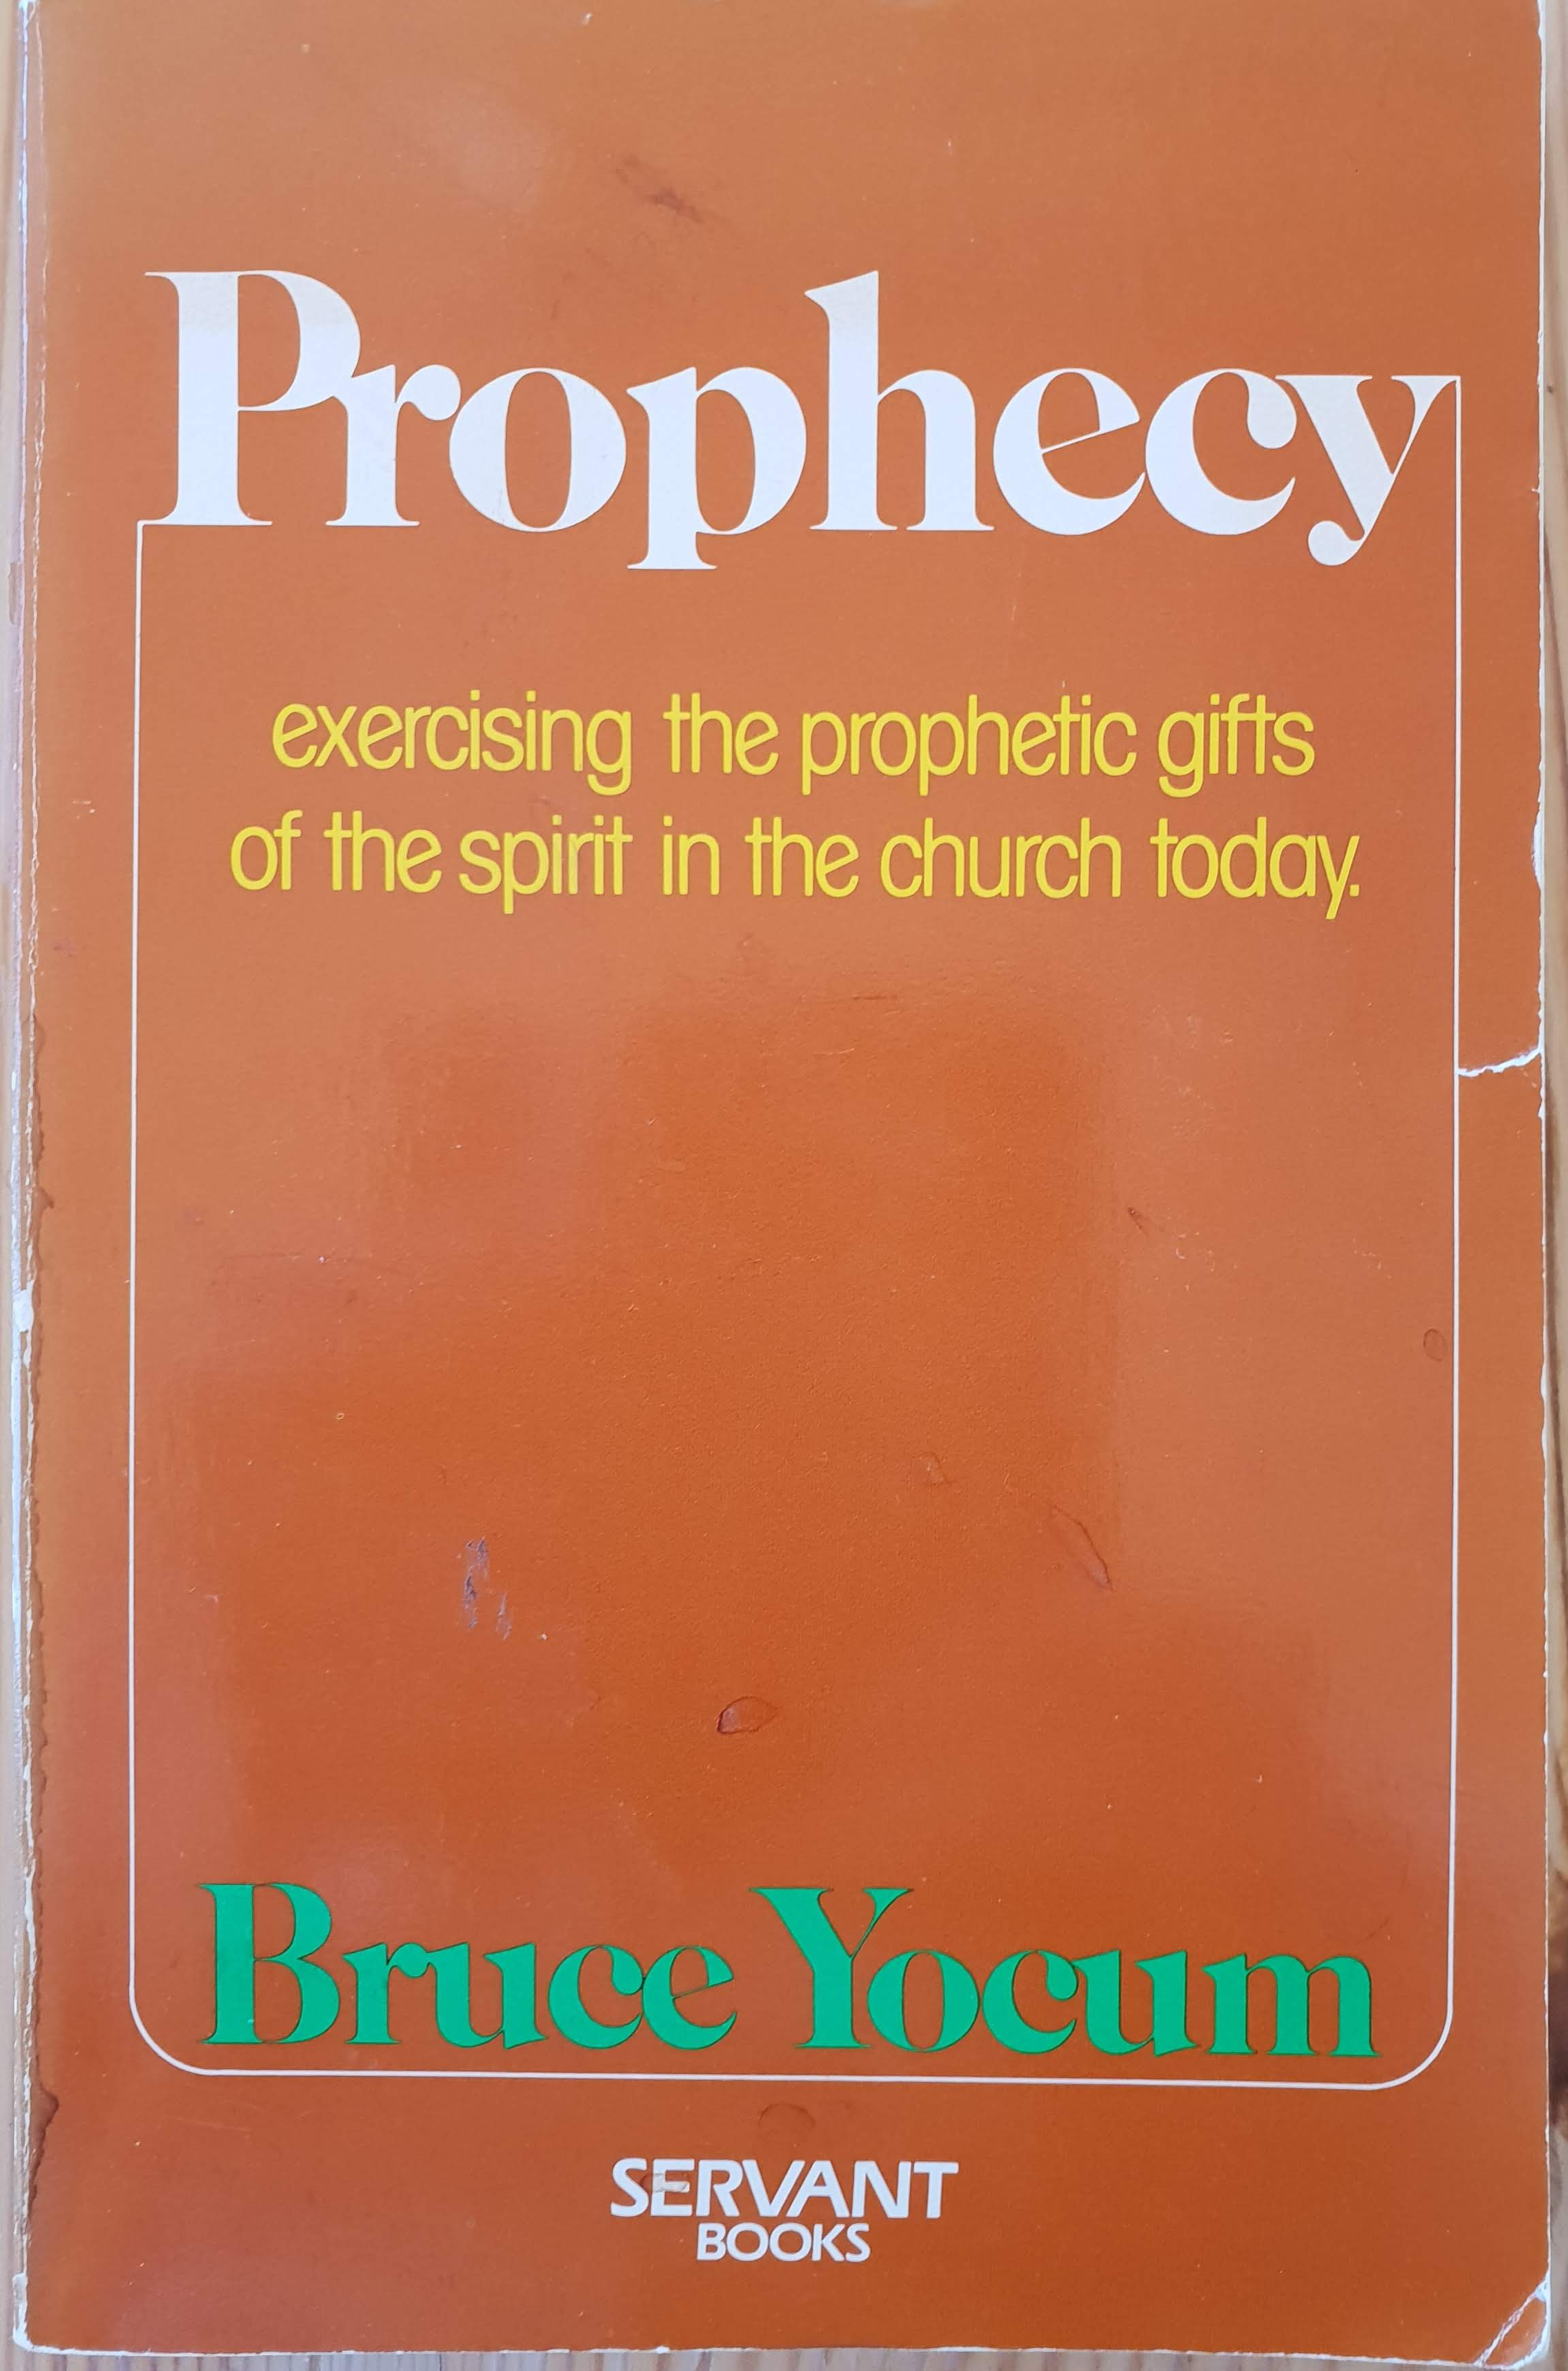 Bokomslag. Prophecy, exercising the prophetic gifts of the Spirit in the Church Today, Bruce Yocum